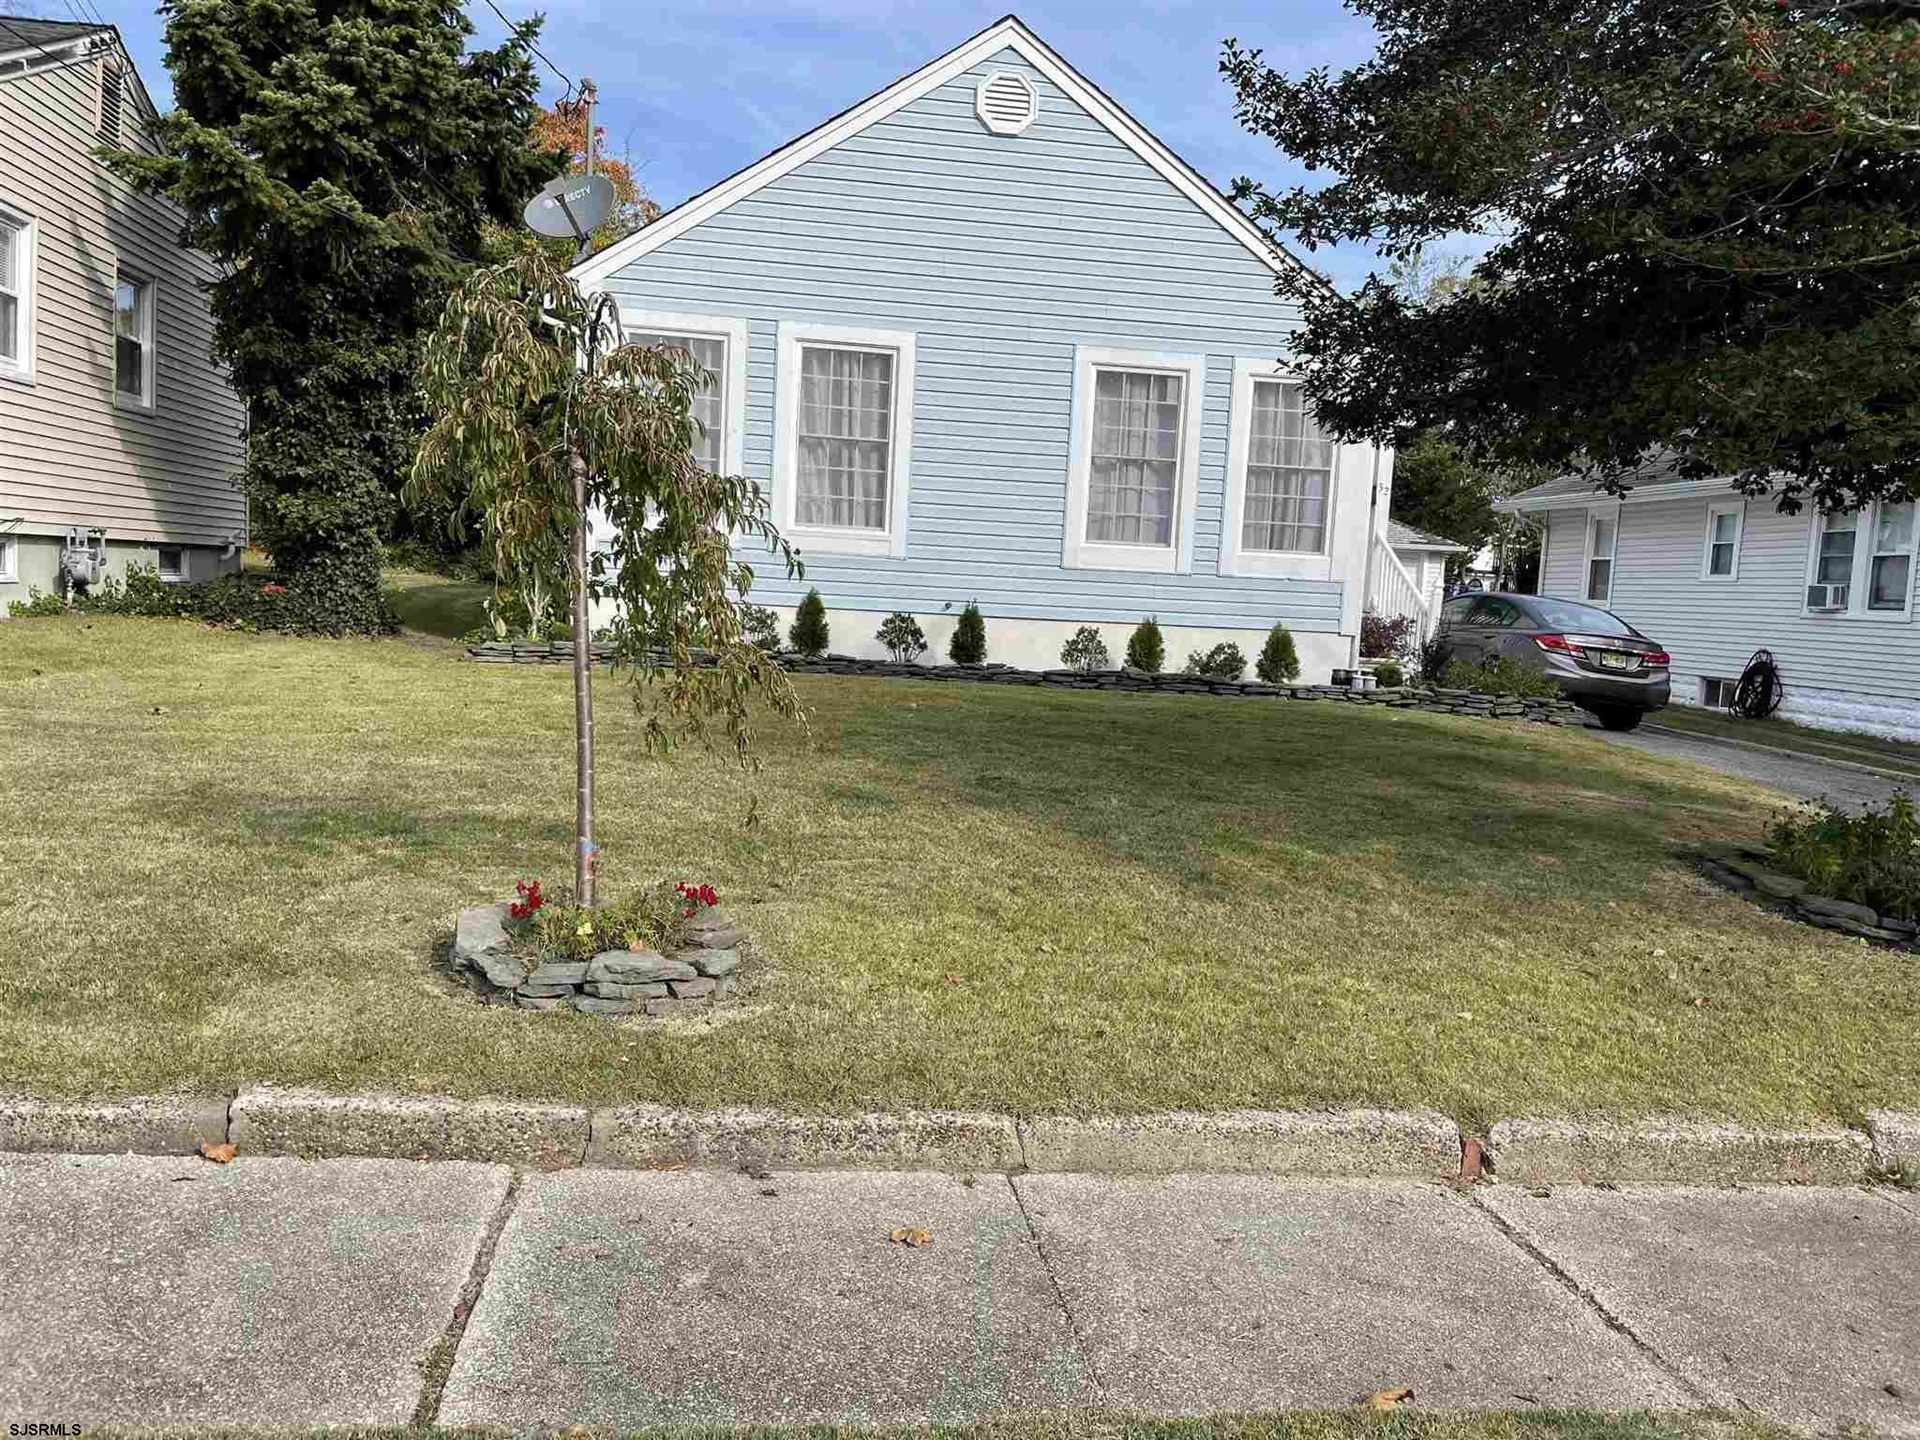 32 W Bolton Ave, Absecon, NJ 08201 - #: 556737